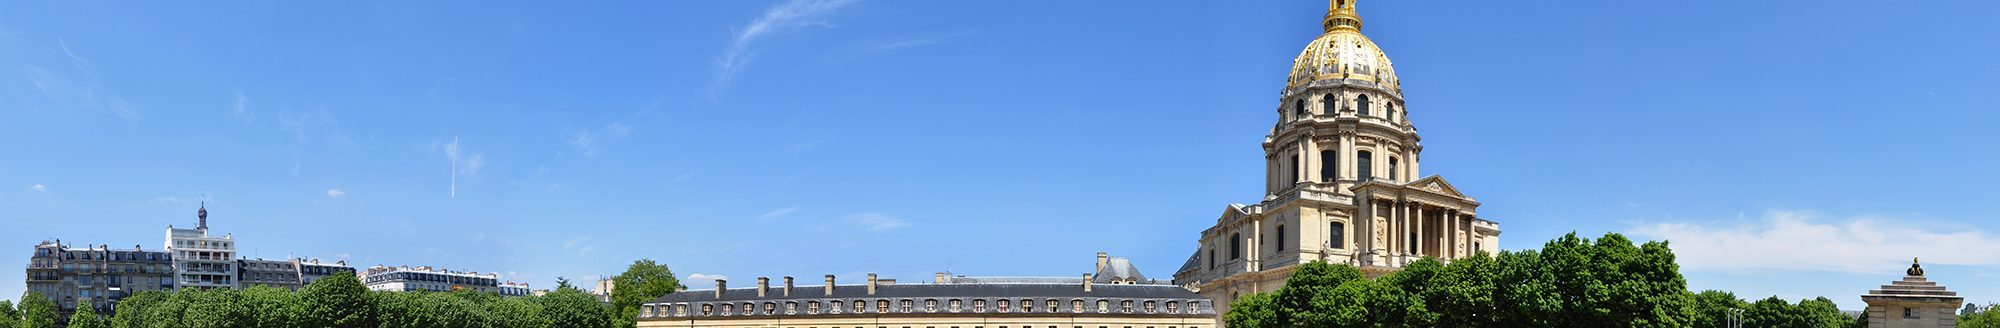 Museum of the Army - Les Invalides